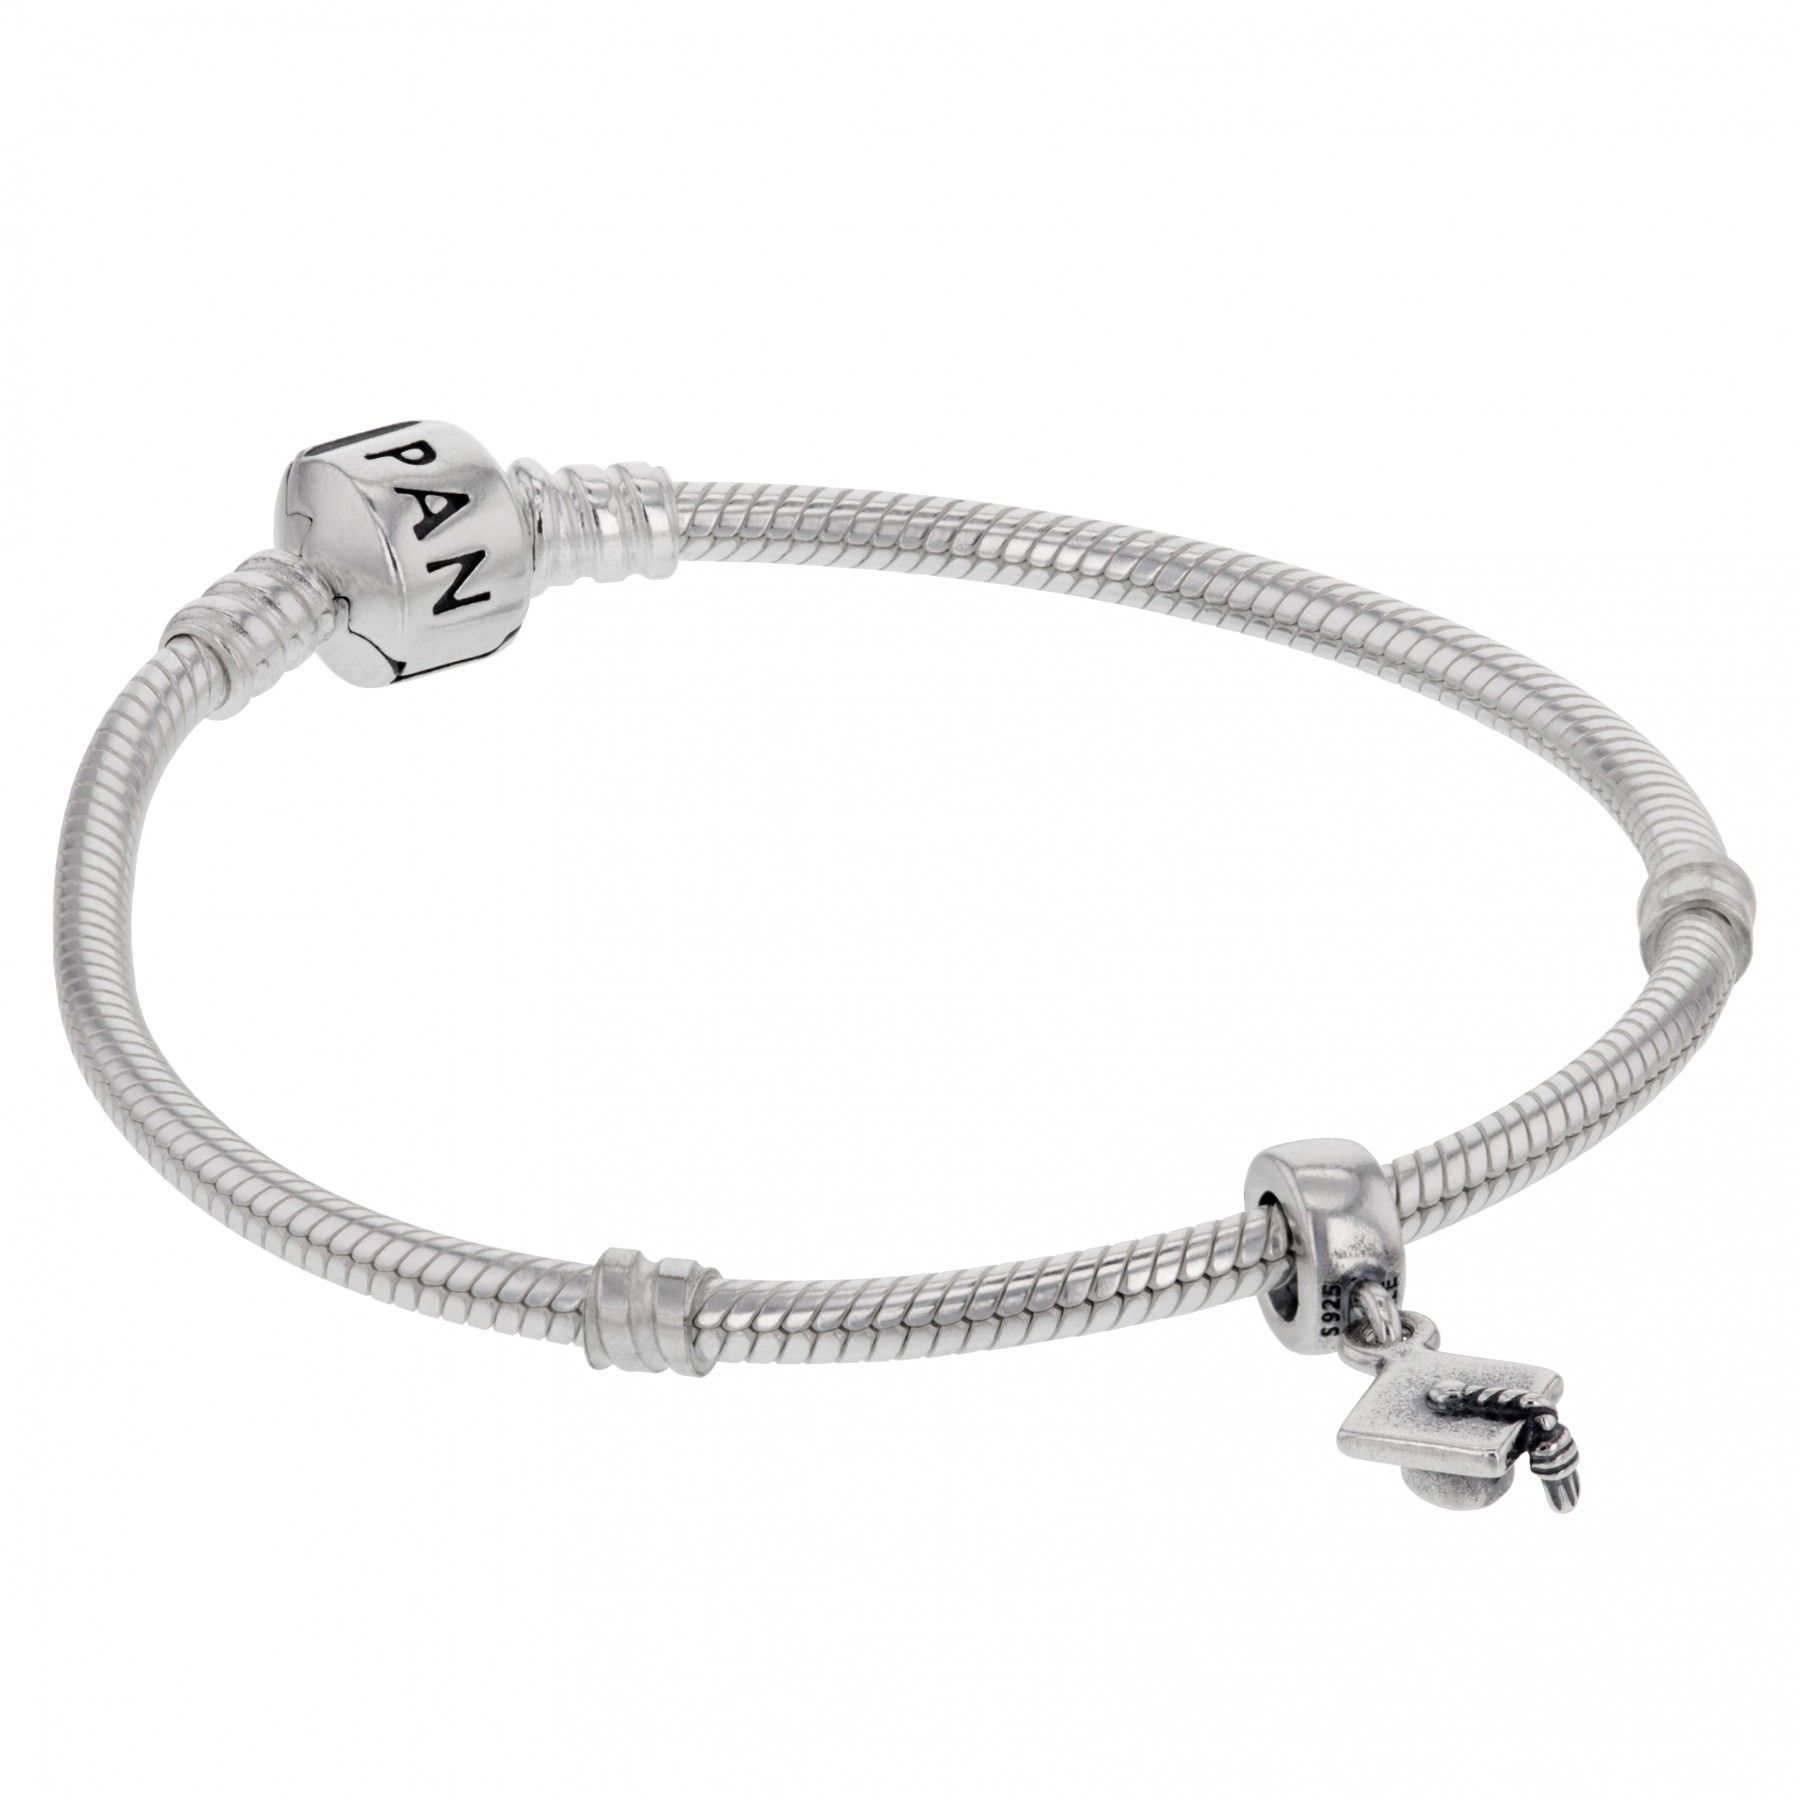 silver charms bear disney transparent p pandora bracelet beads outlet crystal charm bus